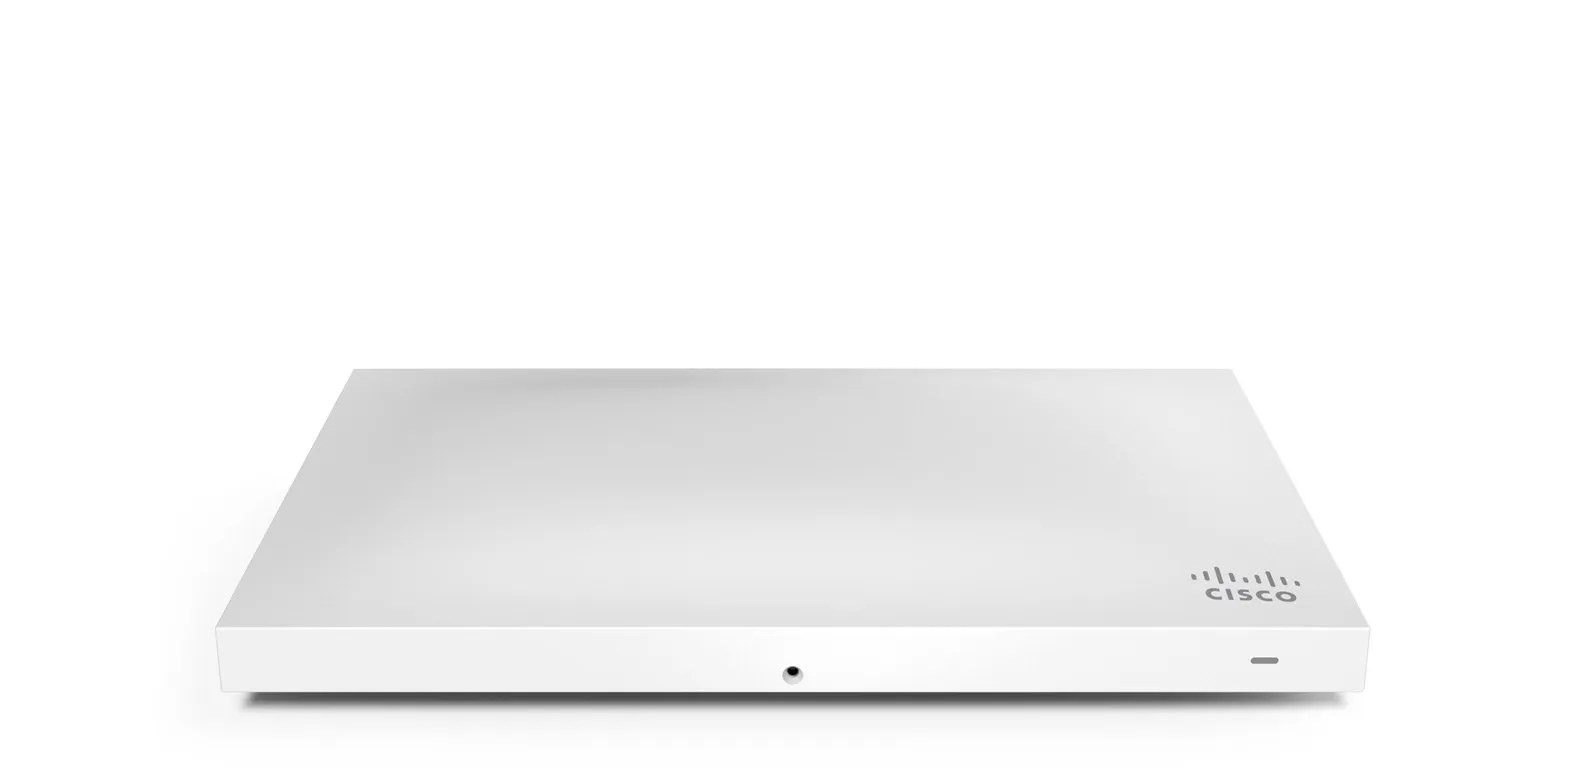 Cisco Meraki MR52 access point